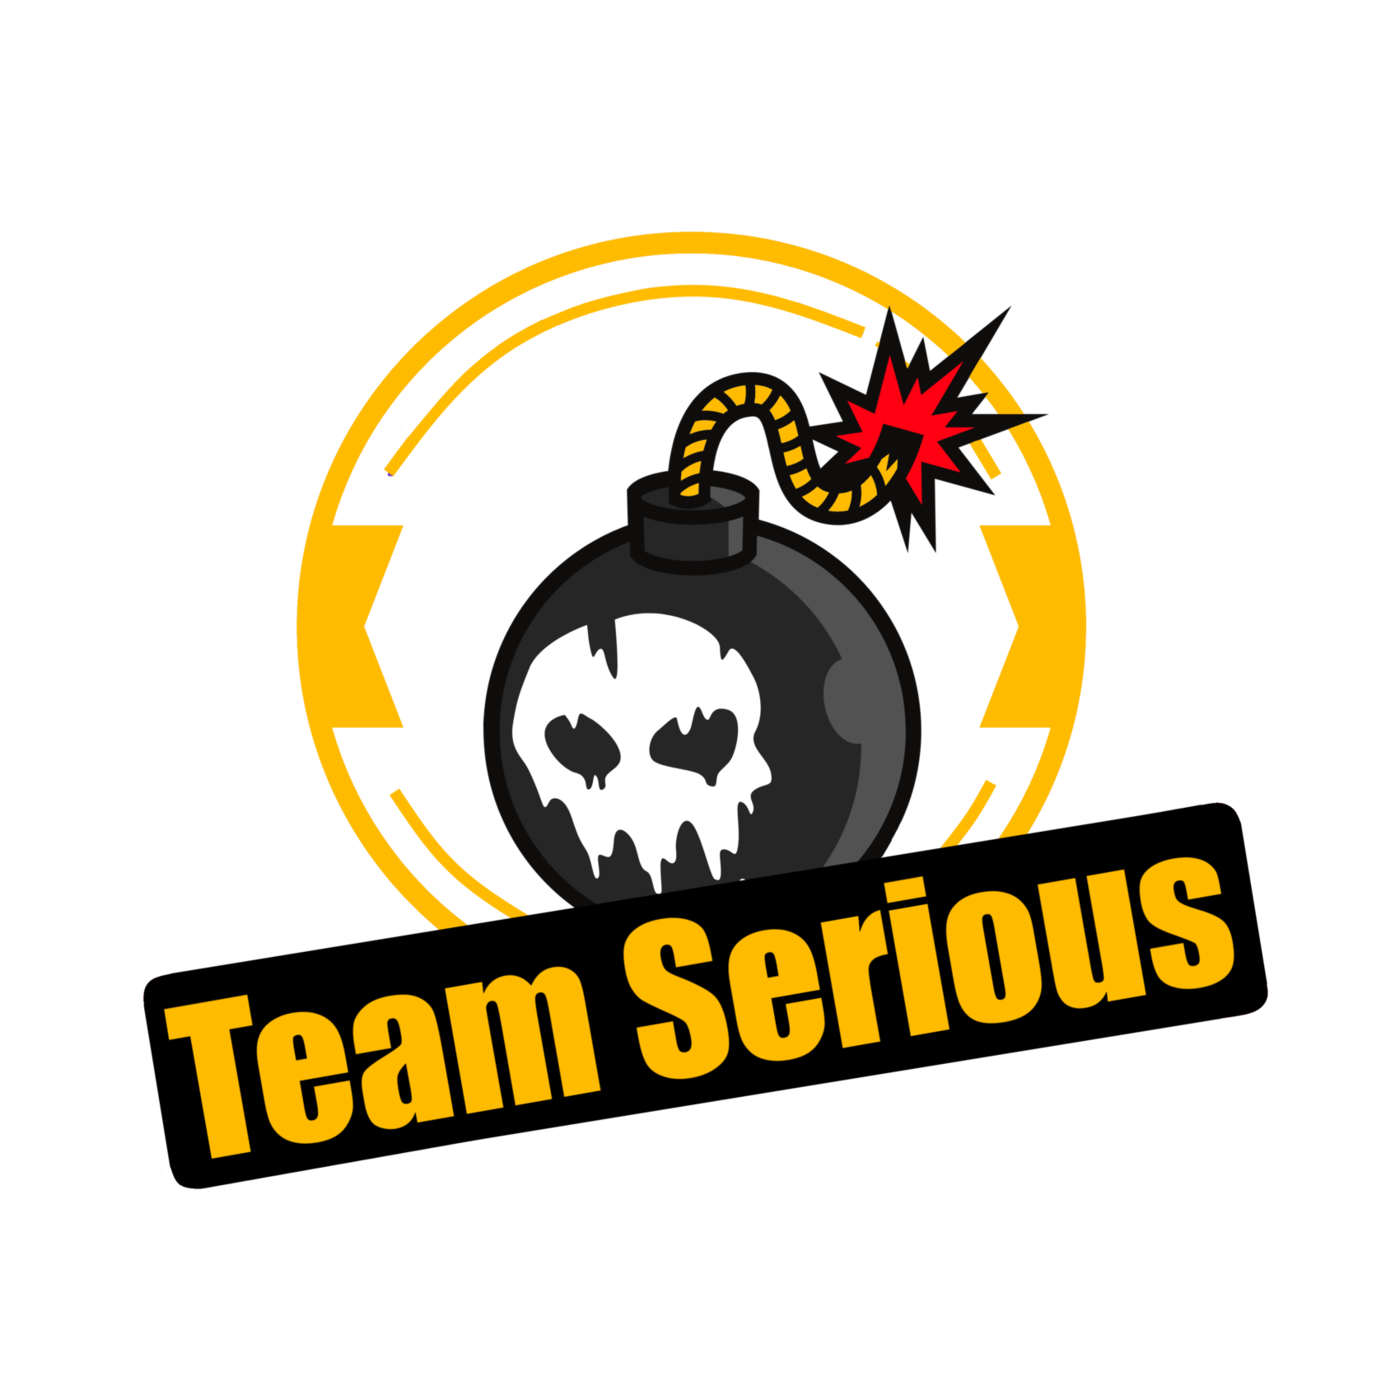 Team Serious DFW Talks - Promote Awarness (Serious Ladies)